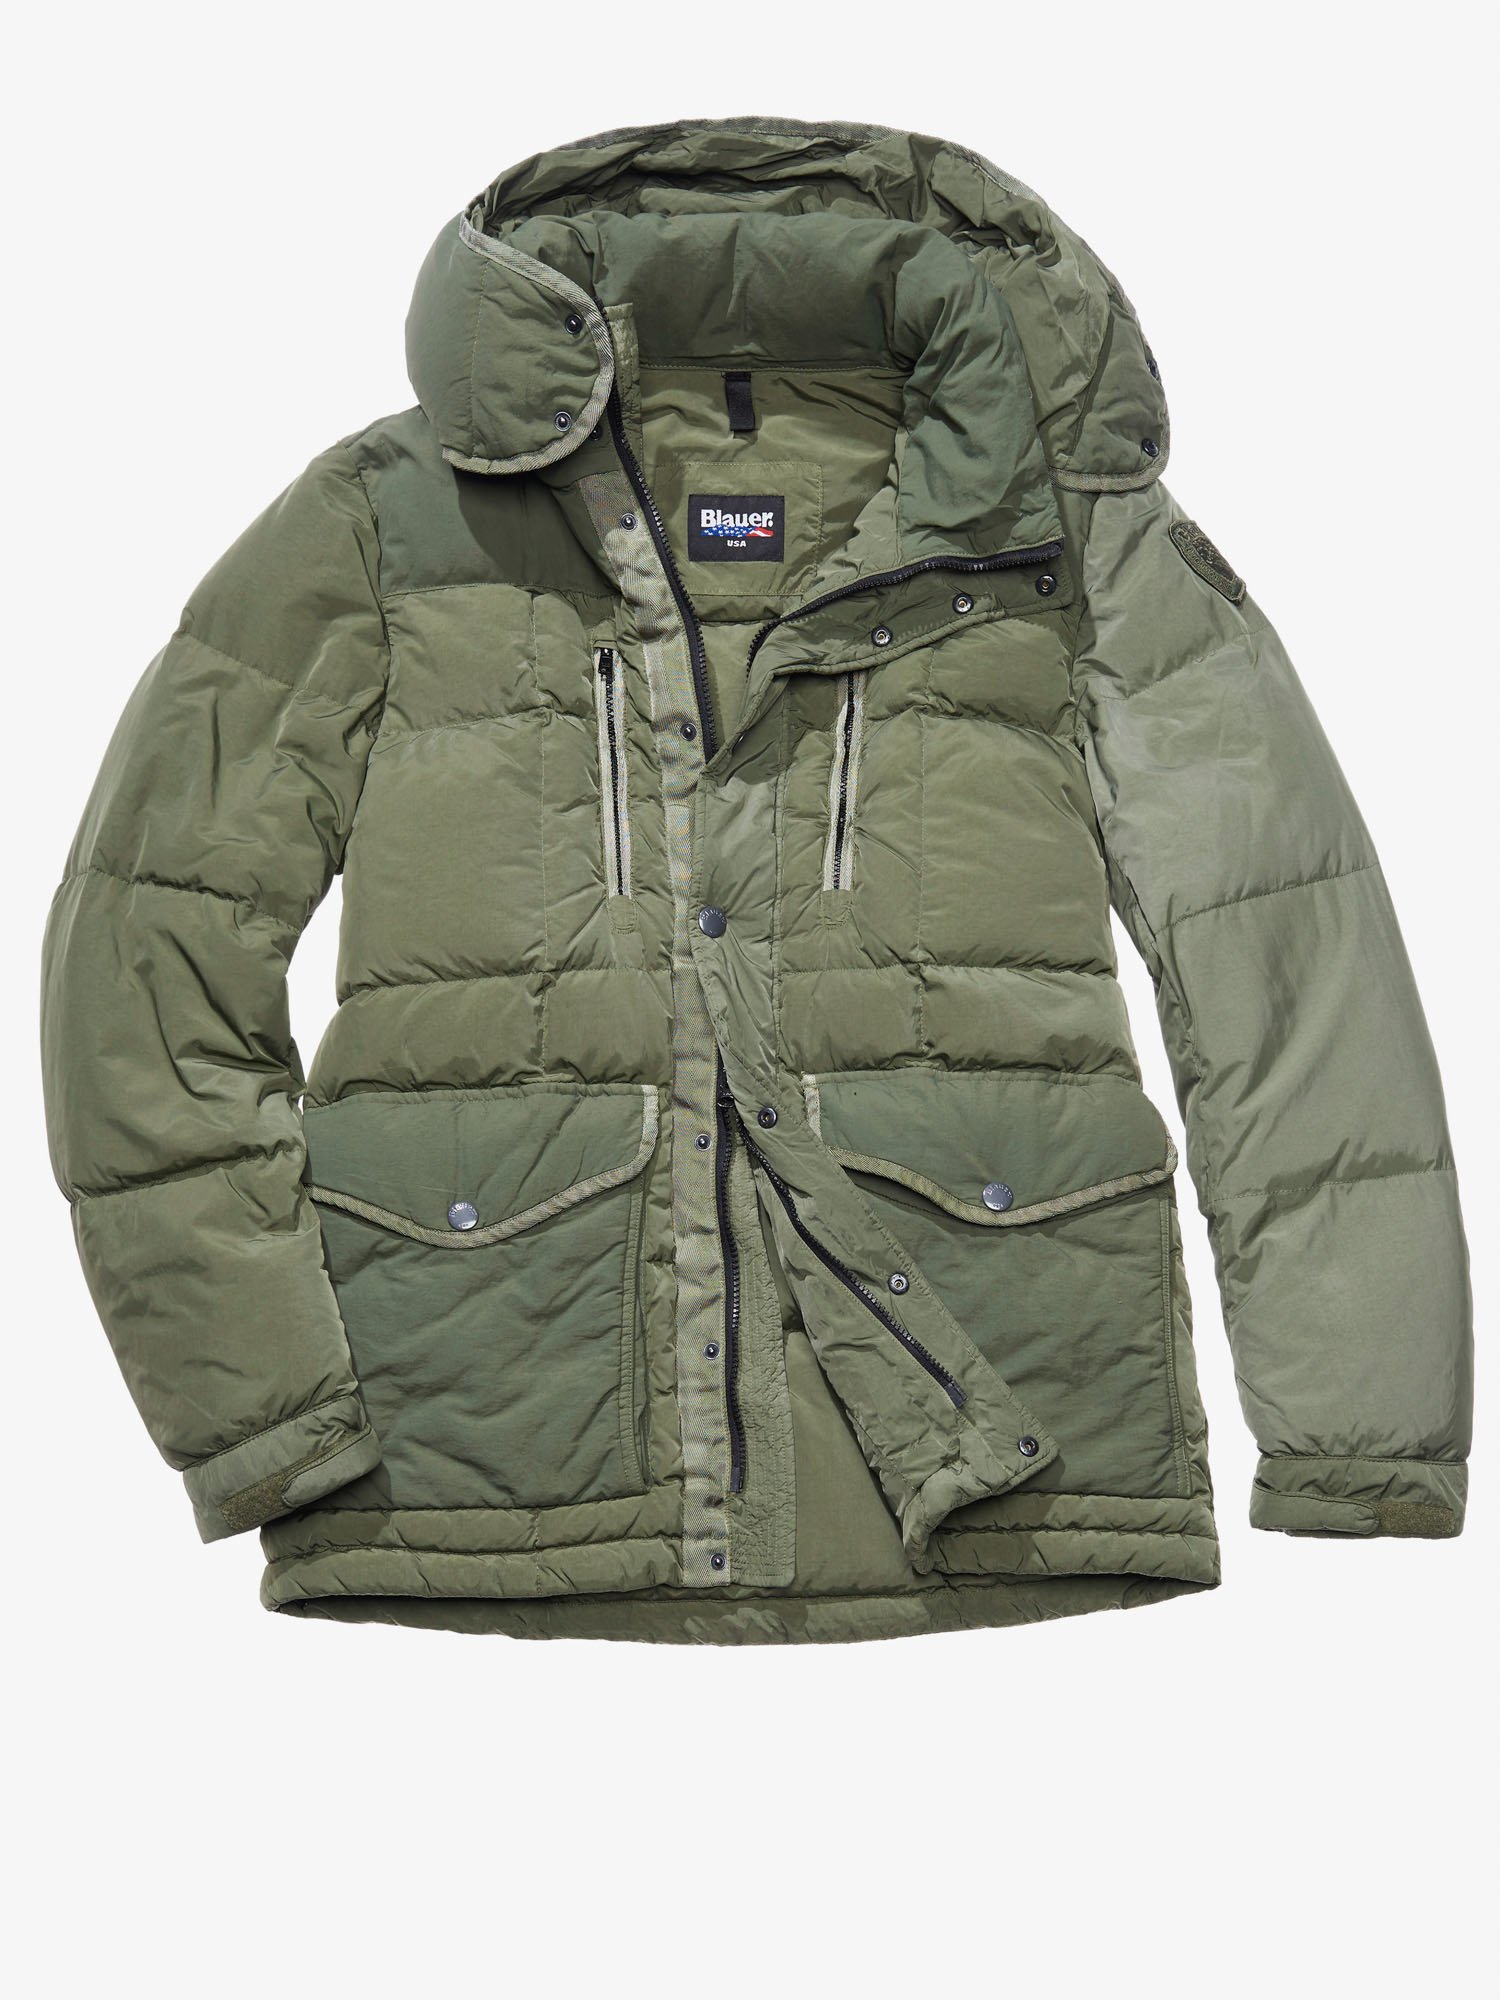 FRANCESCO MILITARY-STYLE DOWN COAT - Blauer